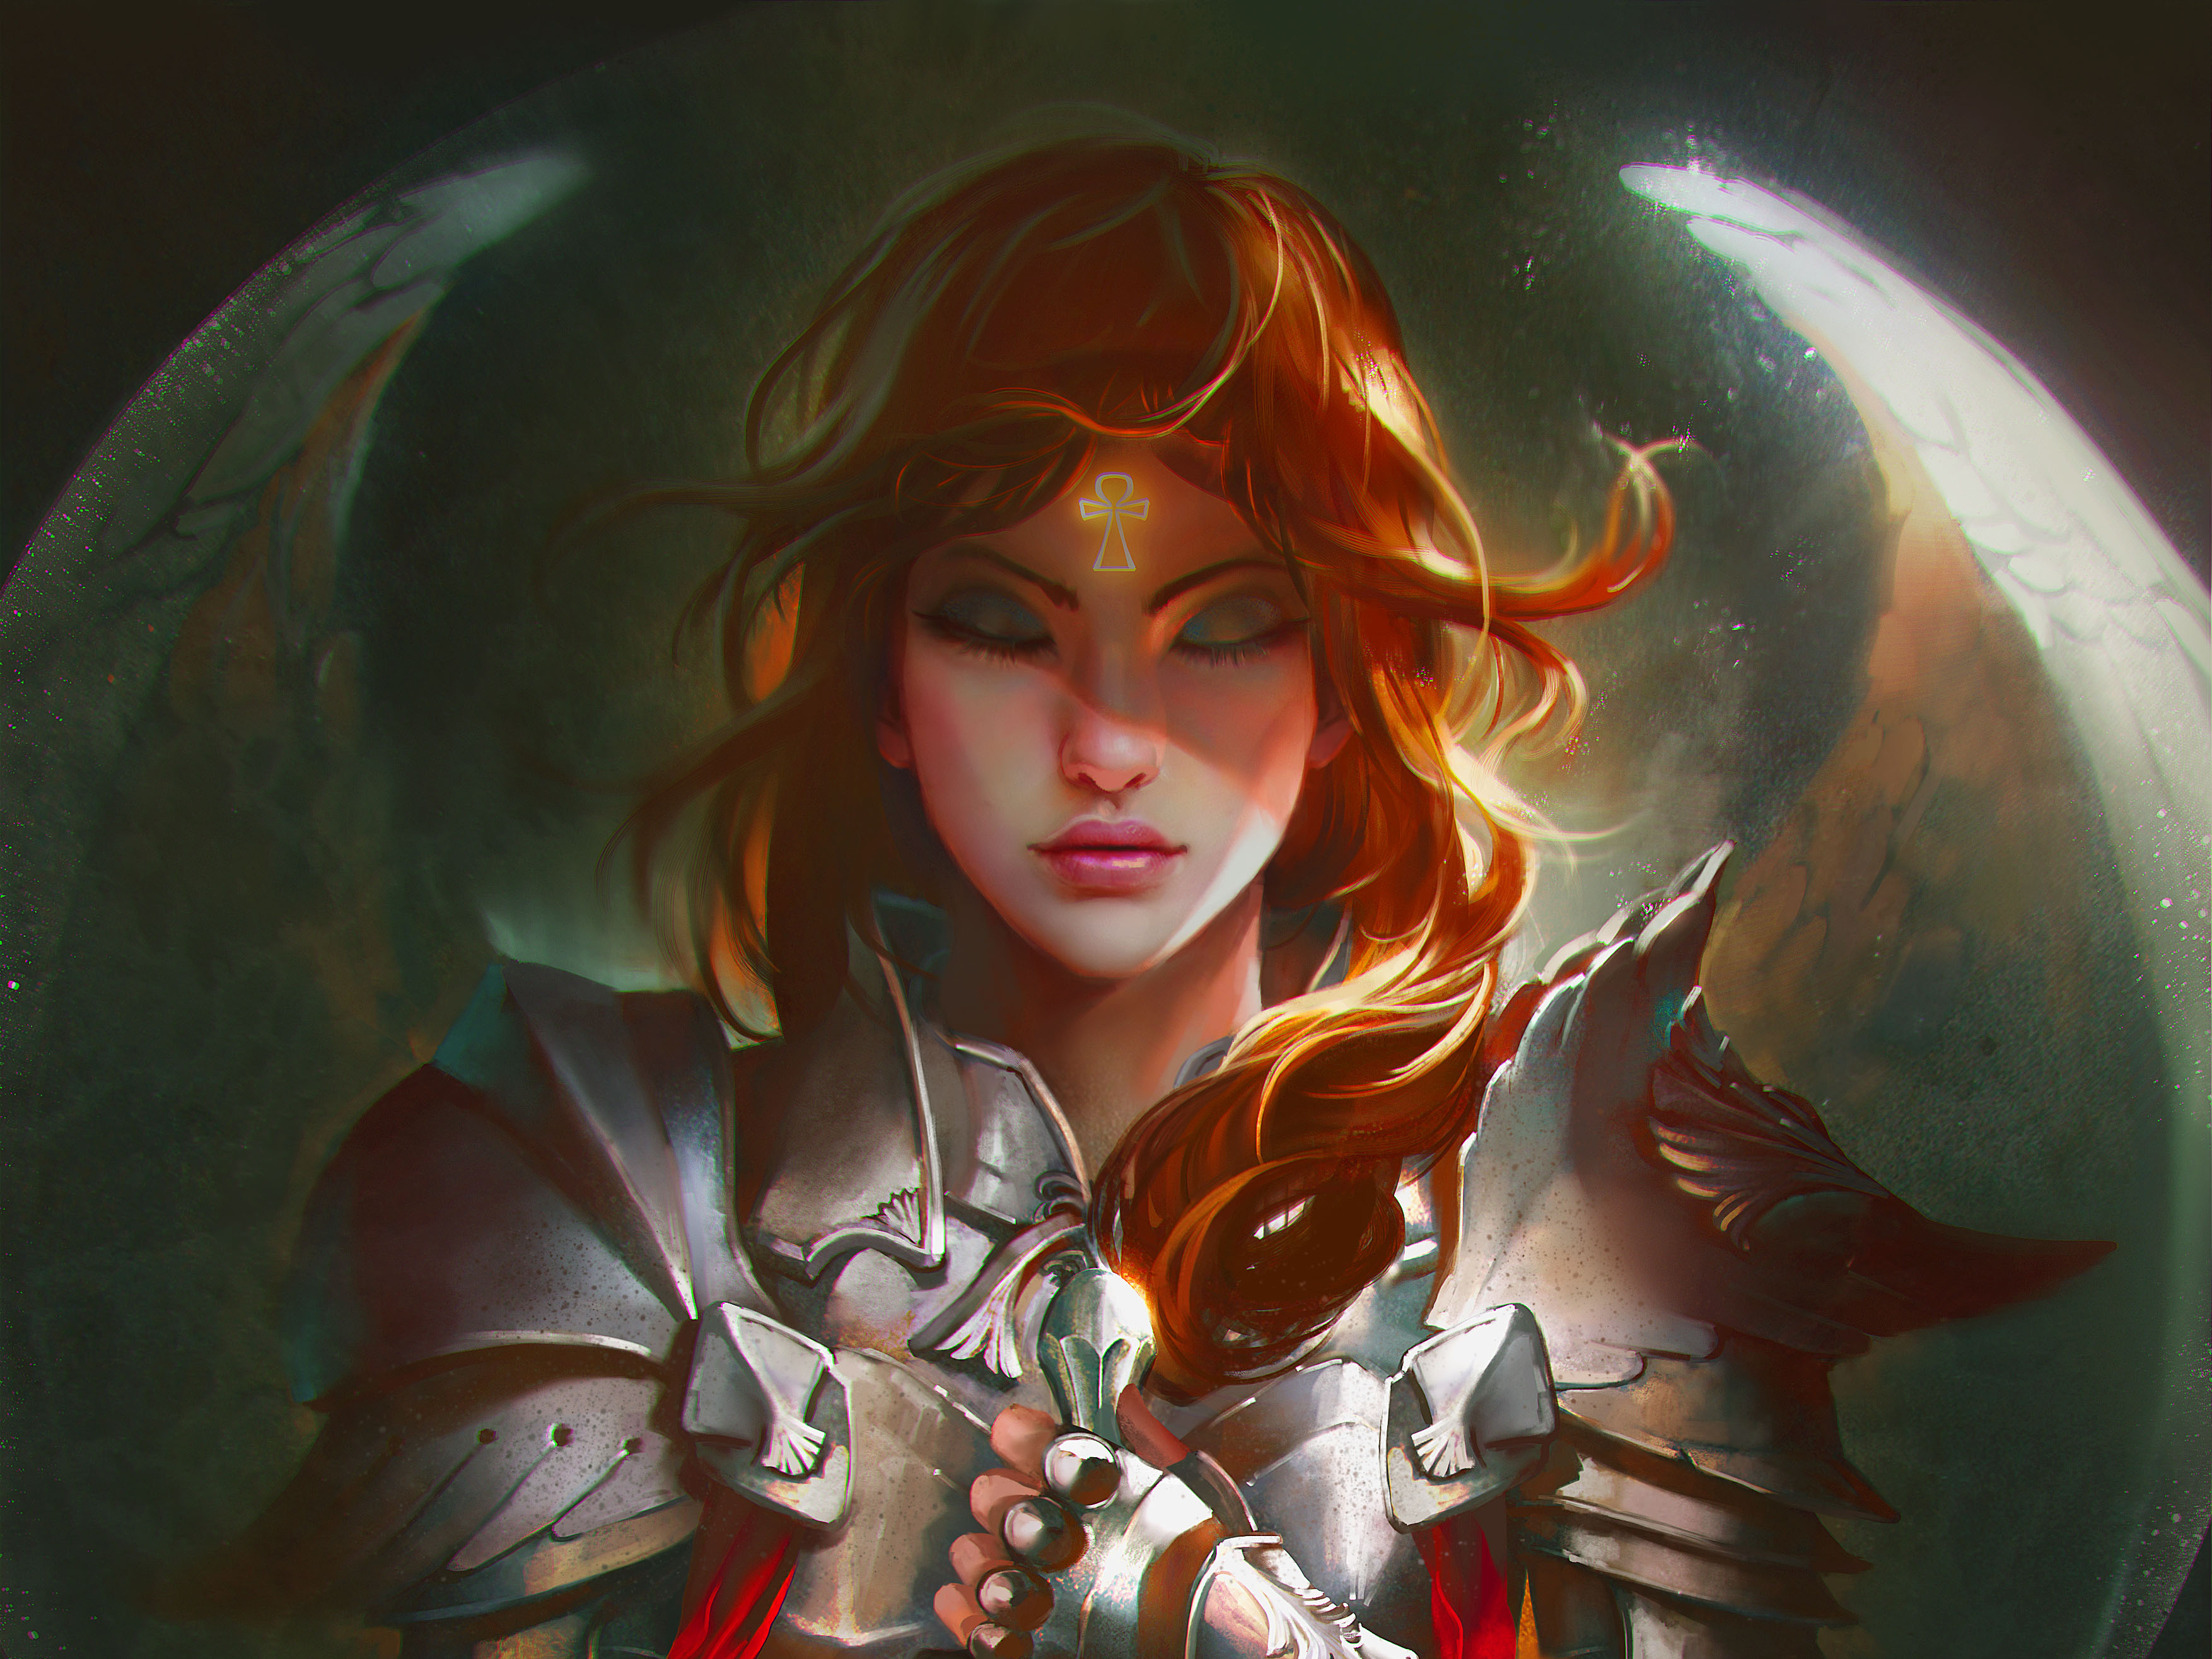 Fantasy - Women Warrior  Fantasy Woman Warrior Warrior Gir  l Armor Wallpaper